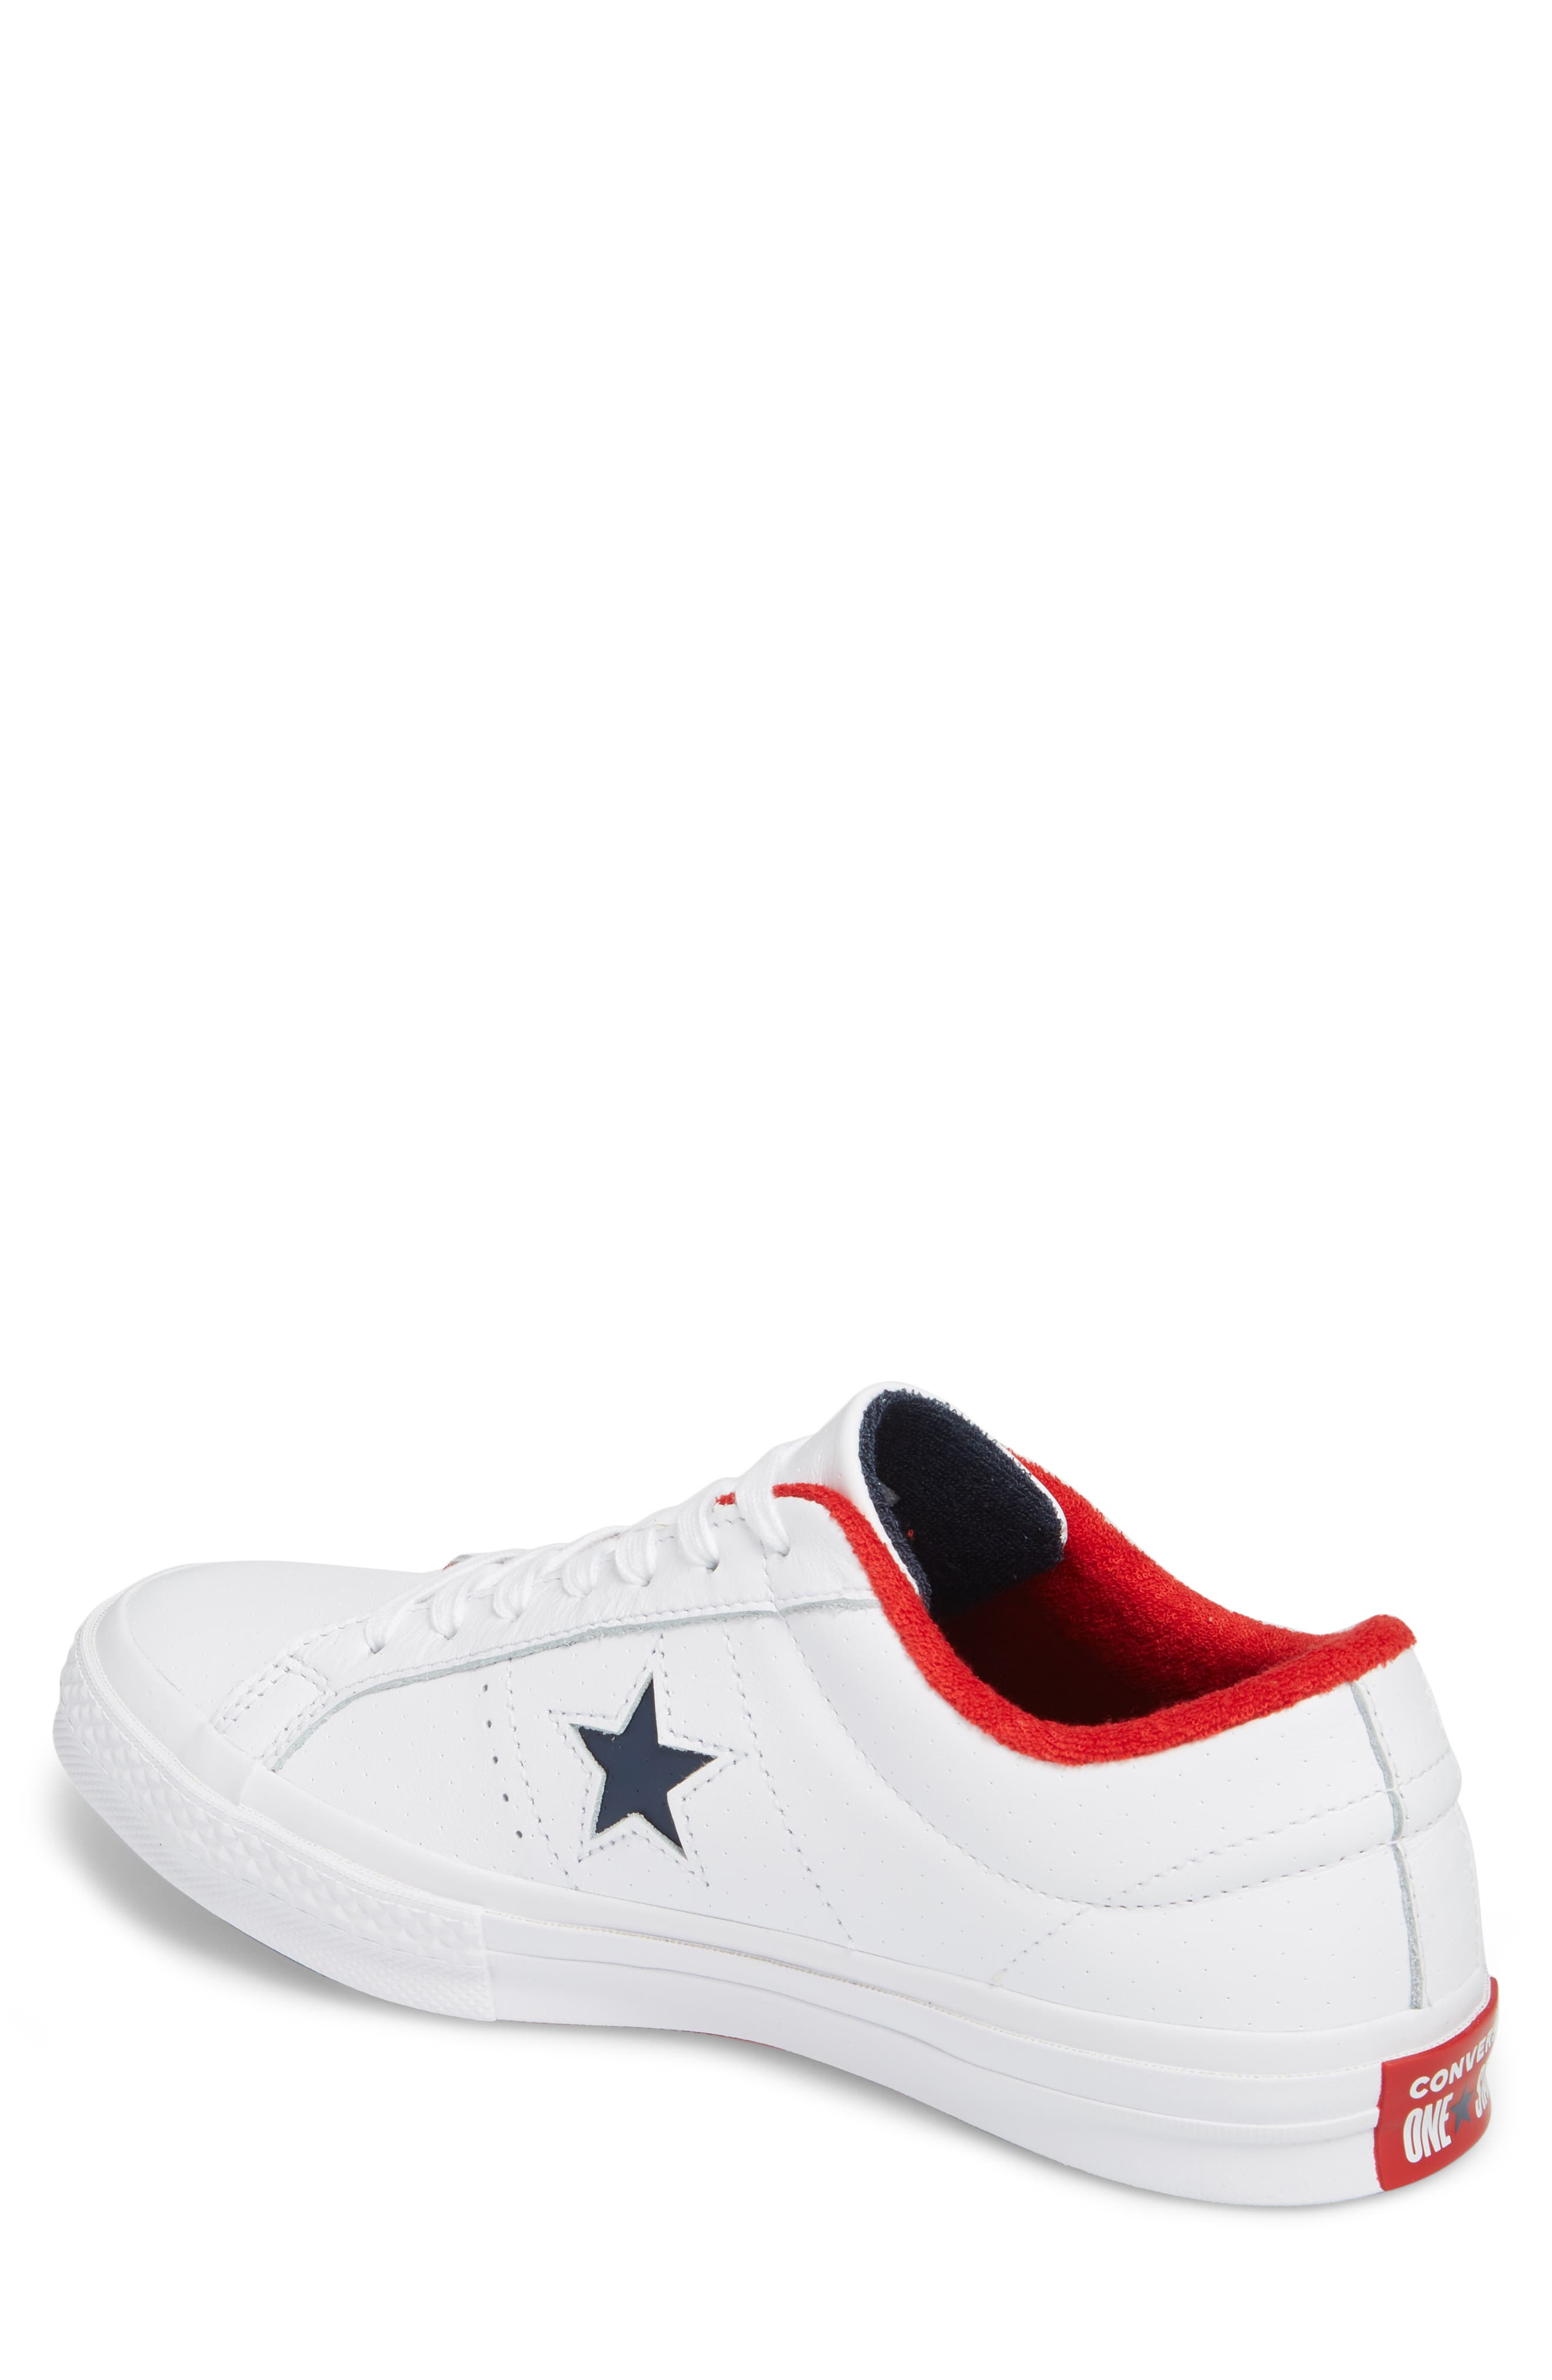 Chuck Taylor<sup>®</sup> One Star Grand Slam Sneaker,                             Alternate thumbnail 2, color,                             101